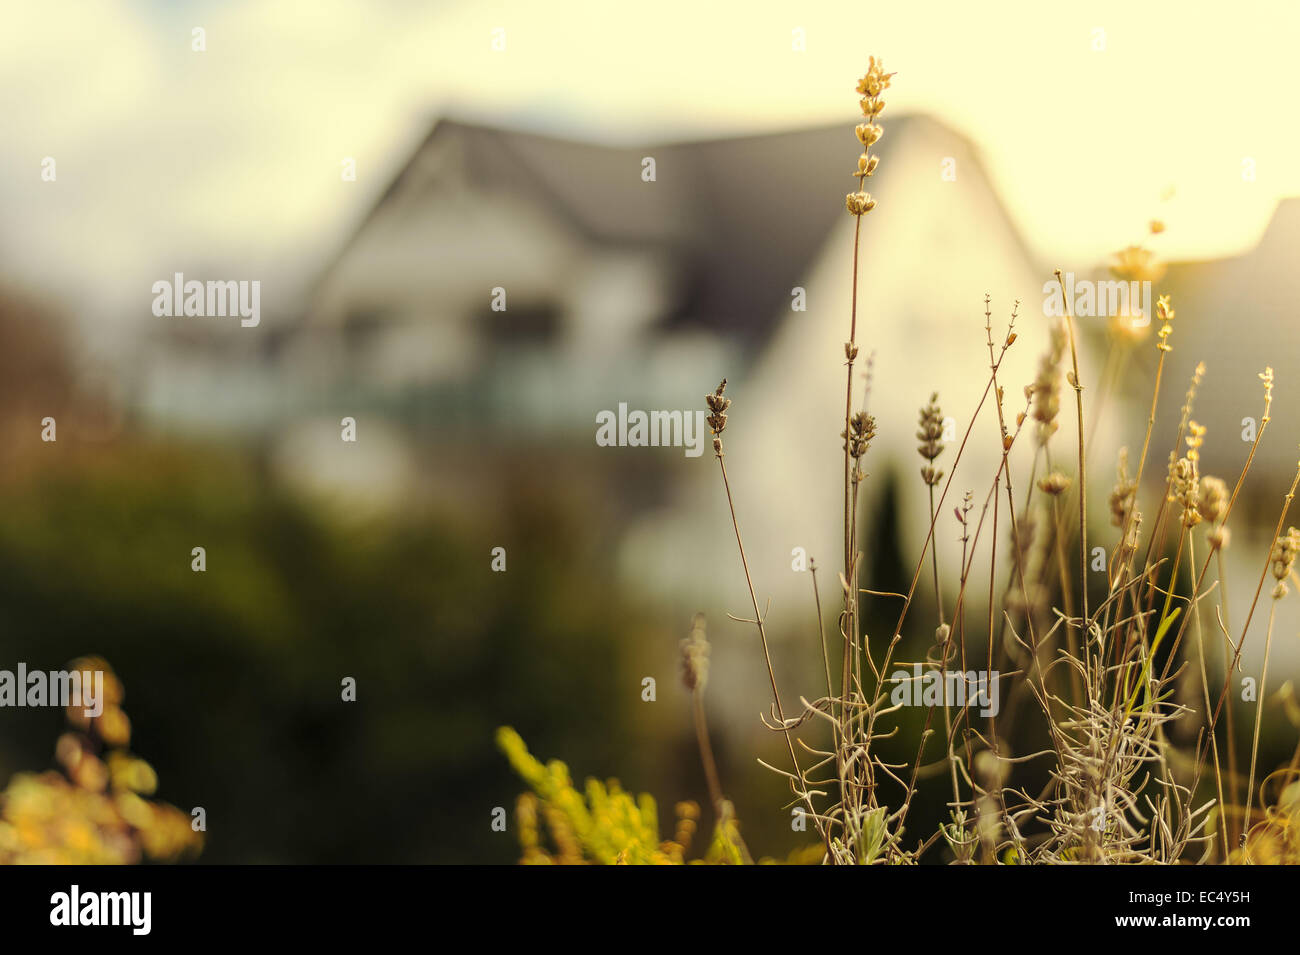 Lavender, dried plants, potted plants, winter, mild, sunny - Stock Image